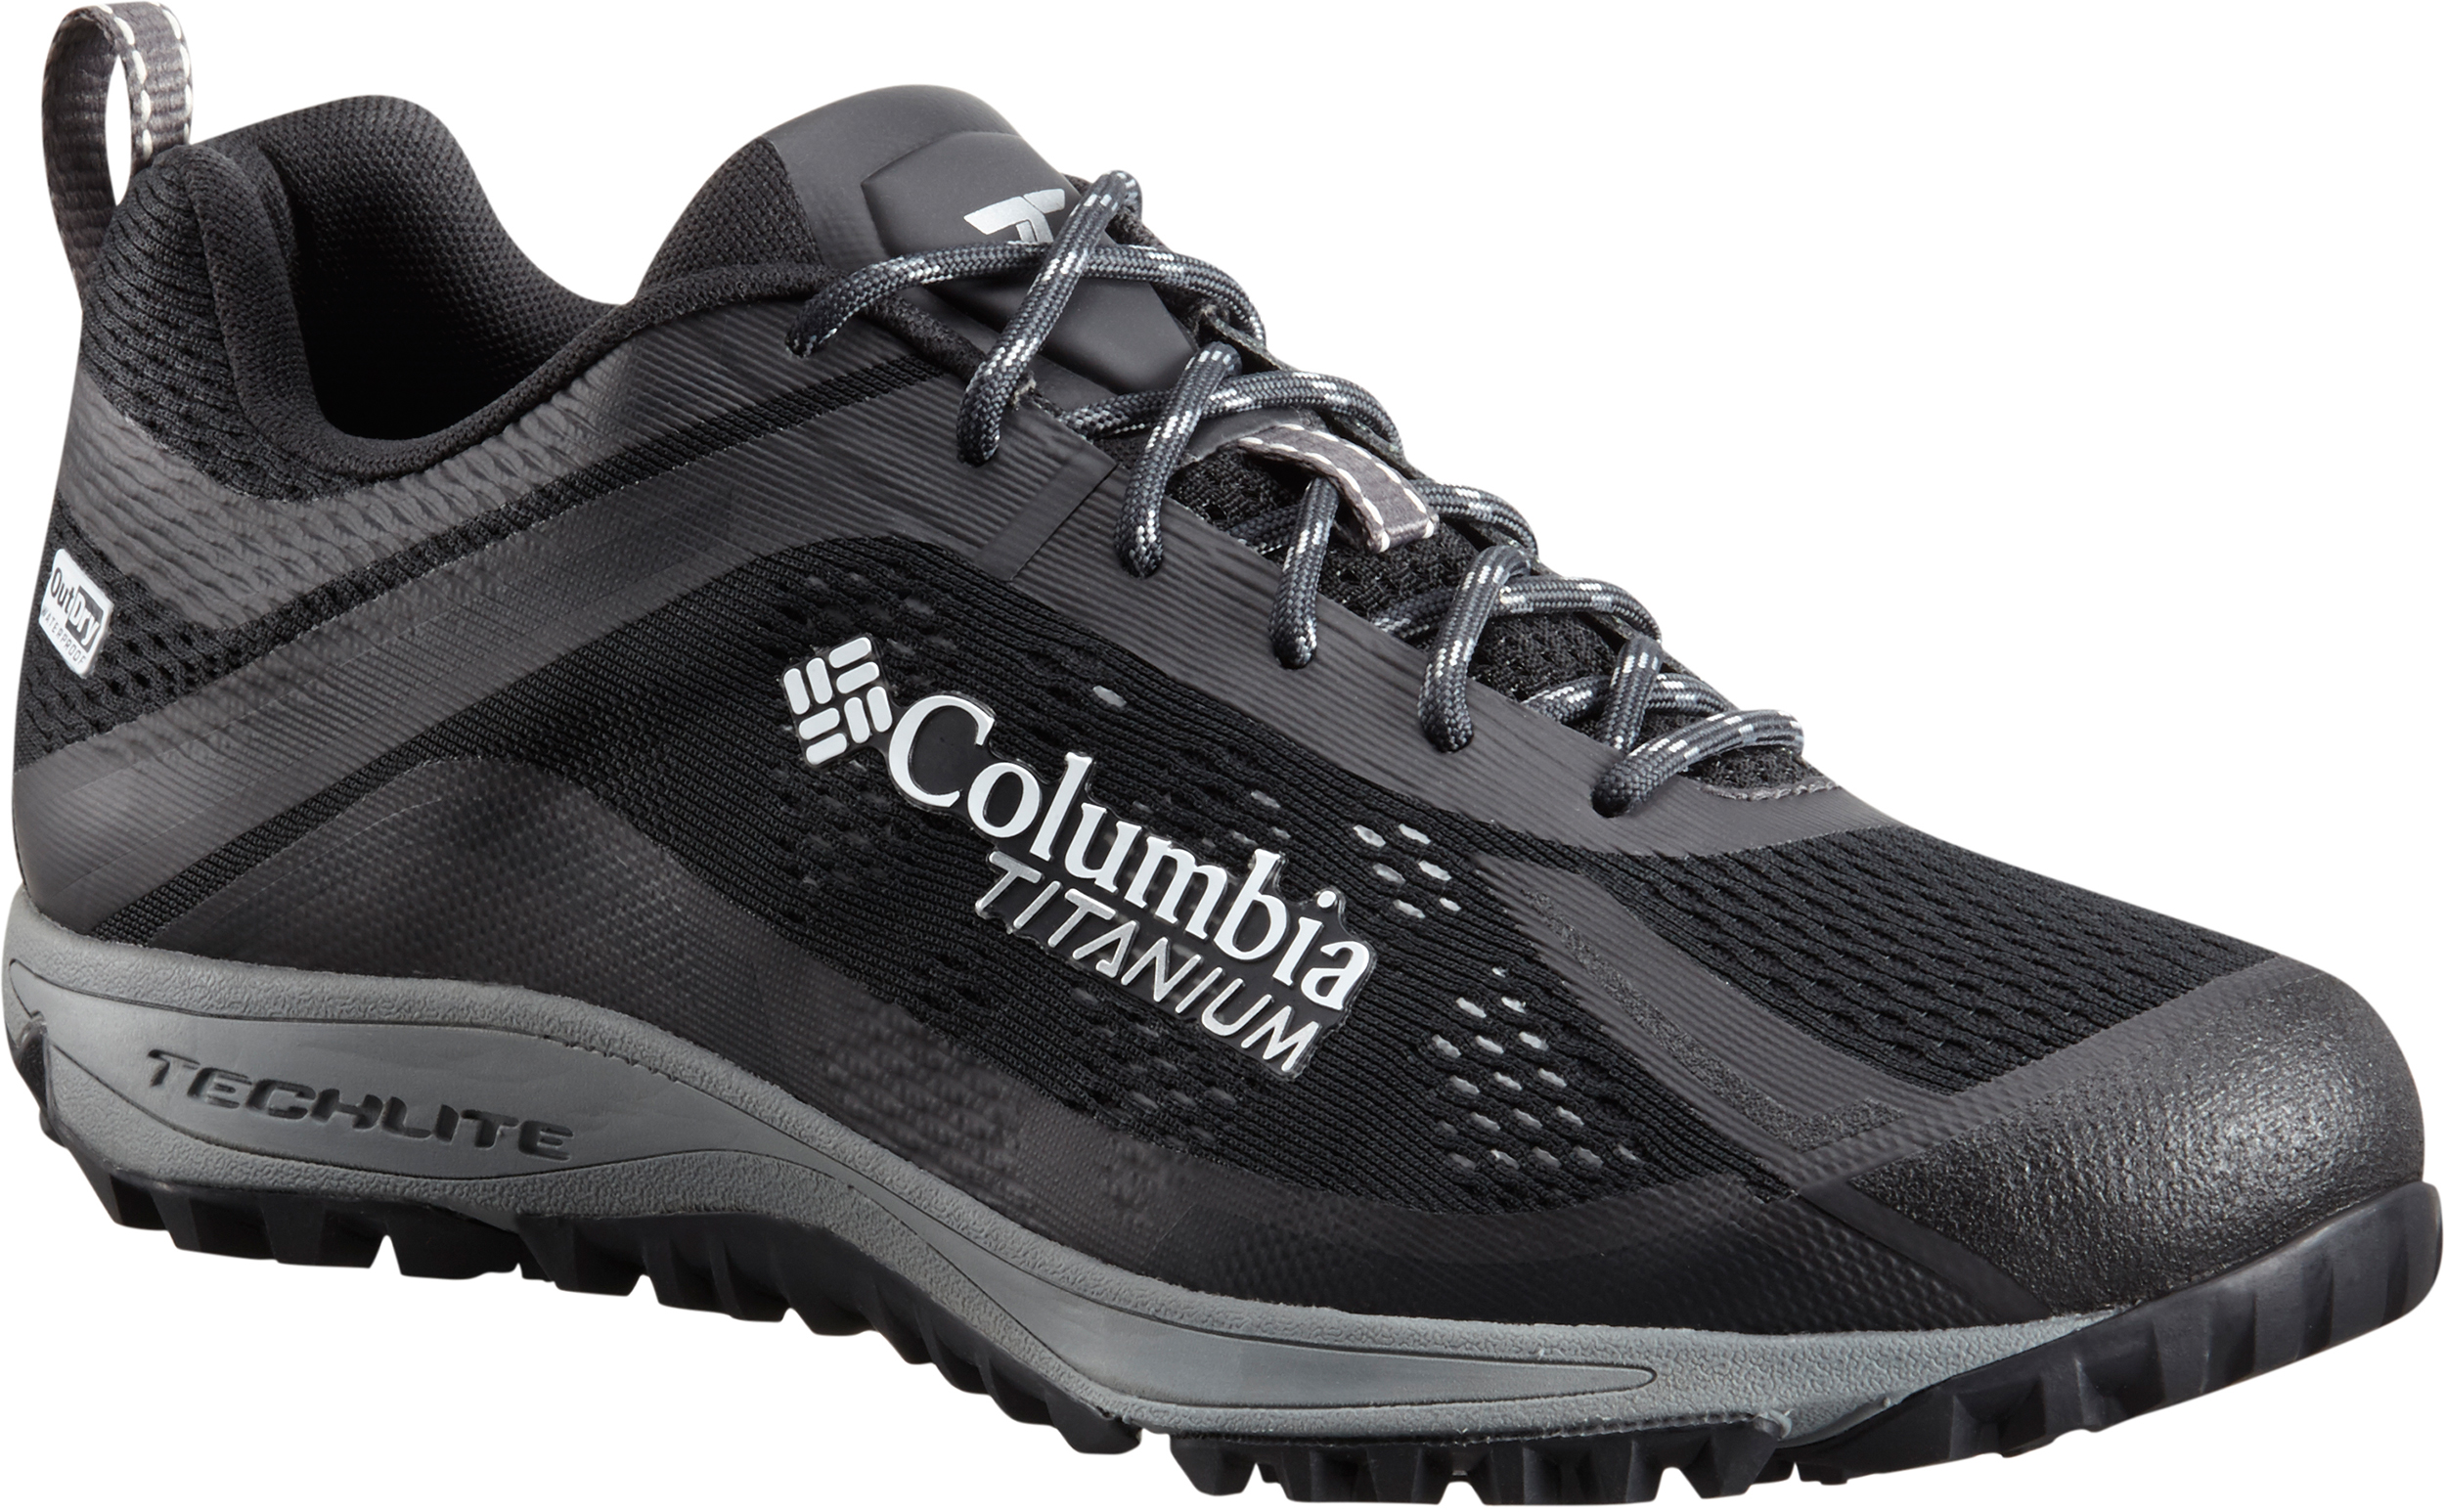 Men's Outdry Columbia Iii Shoes Titanium Conspiracy xwWqXF1z